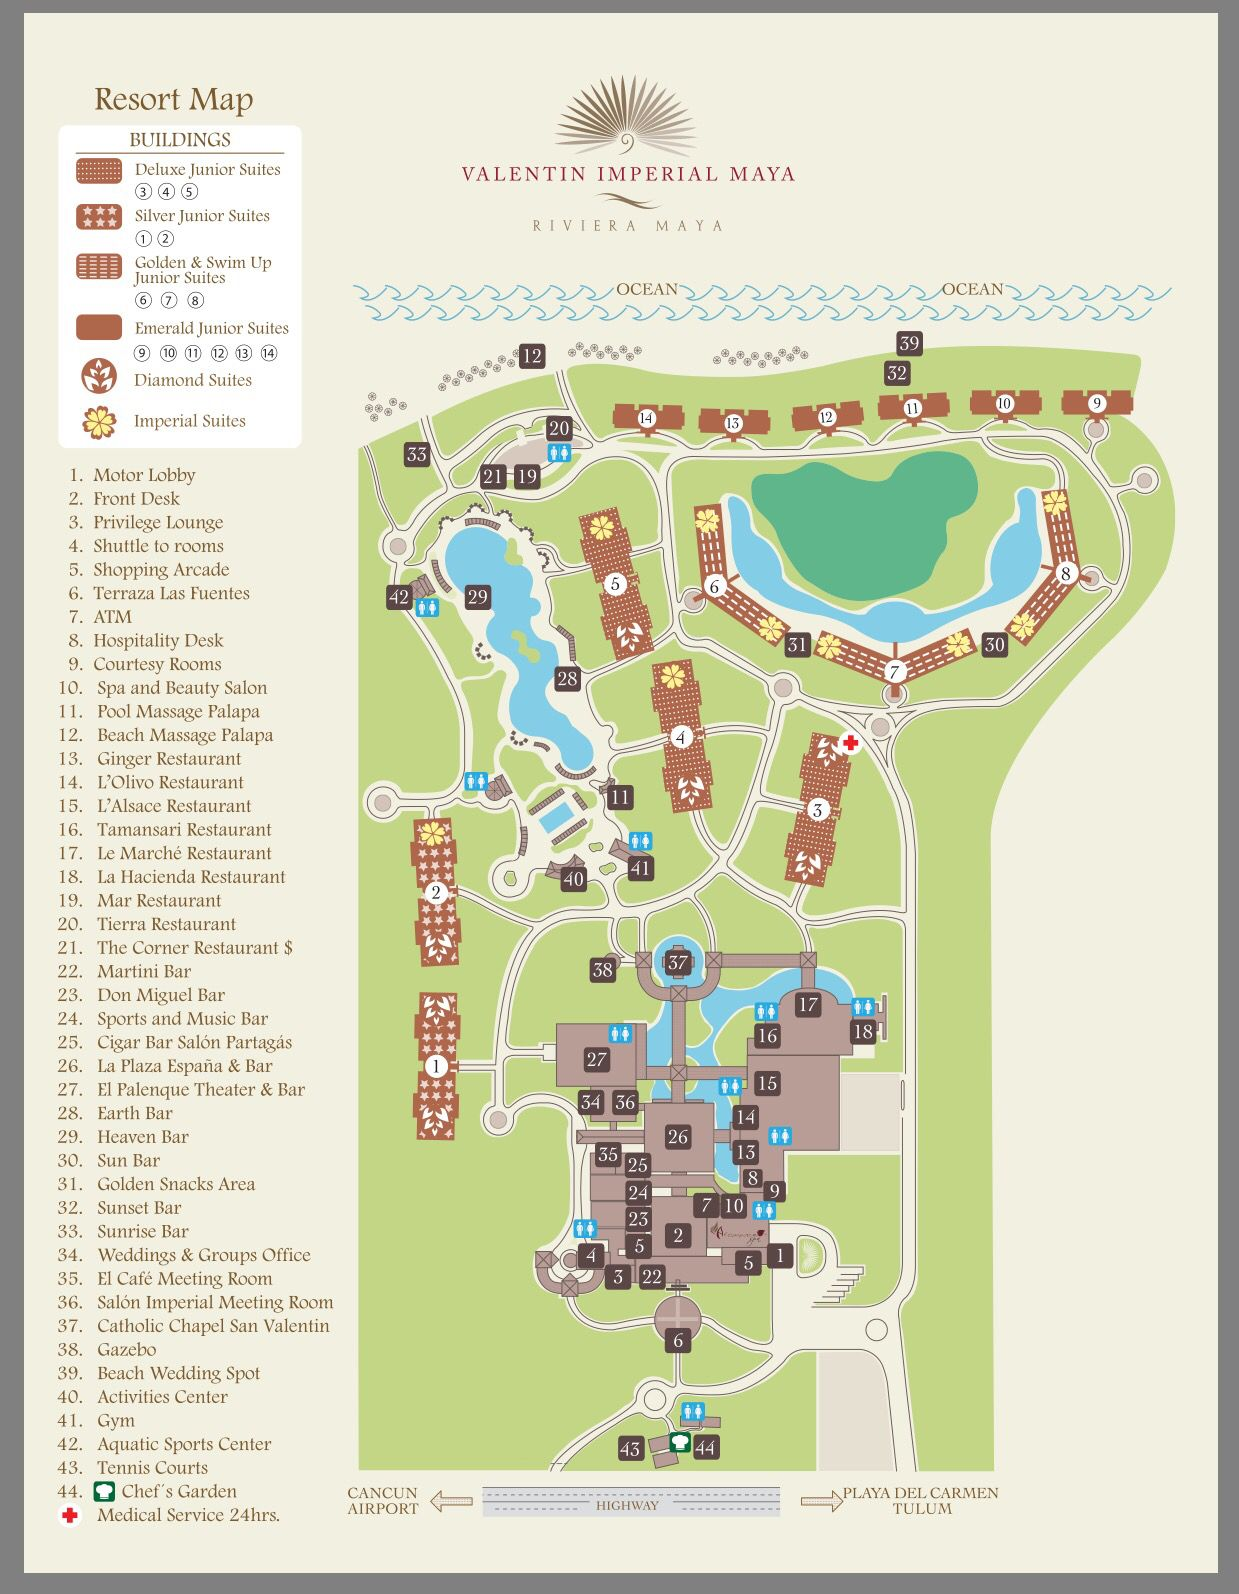 Valentin Imperial Maya Resort Map Mexico Pinterest